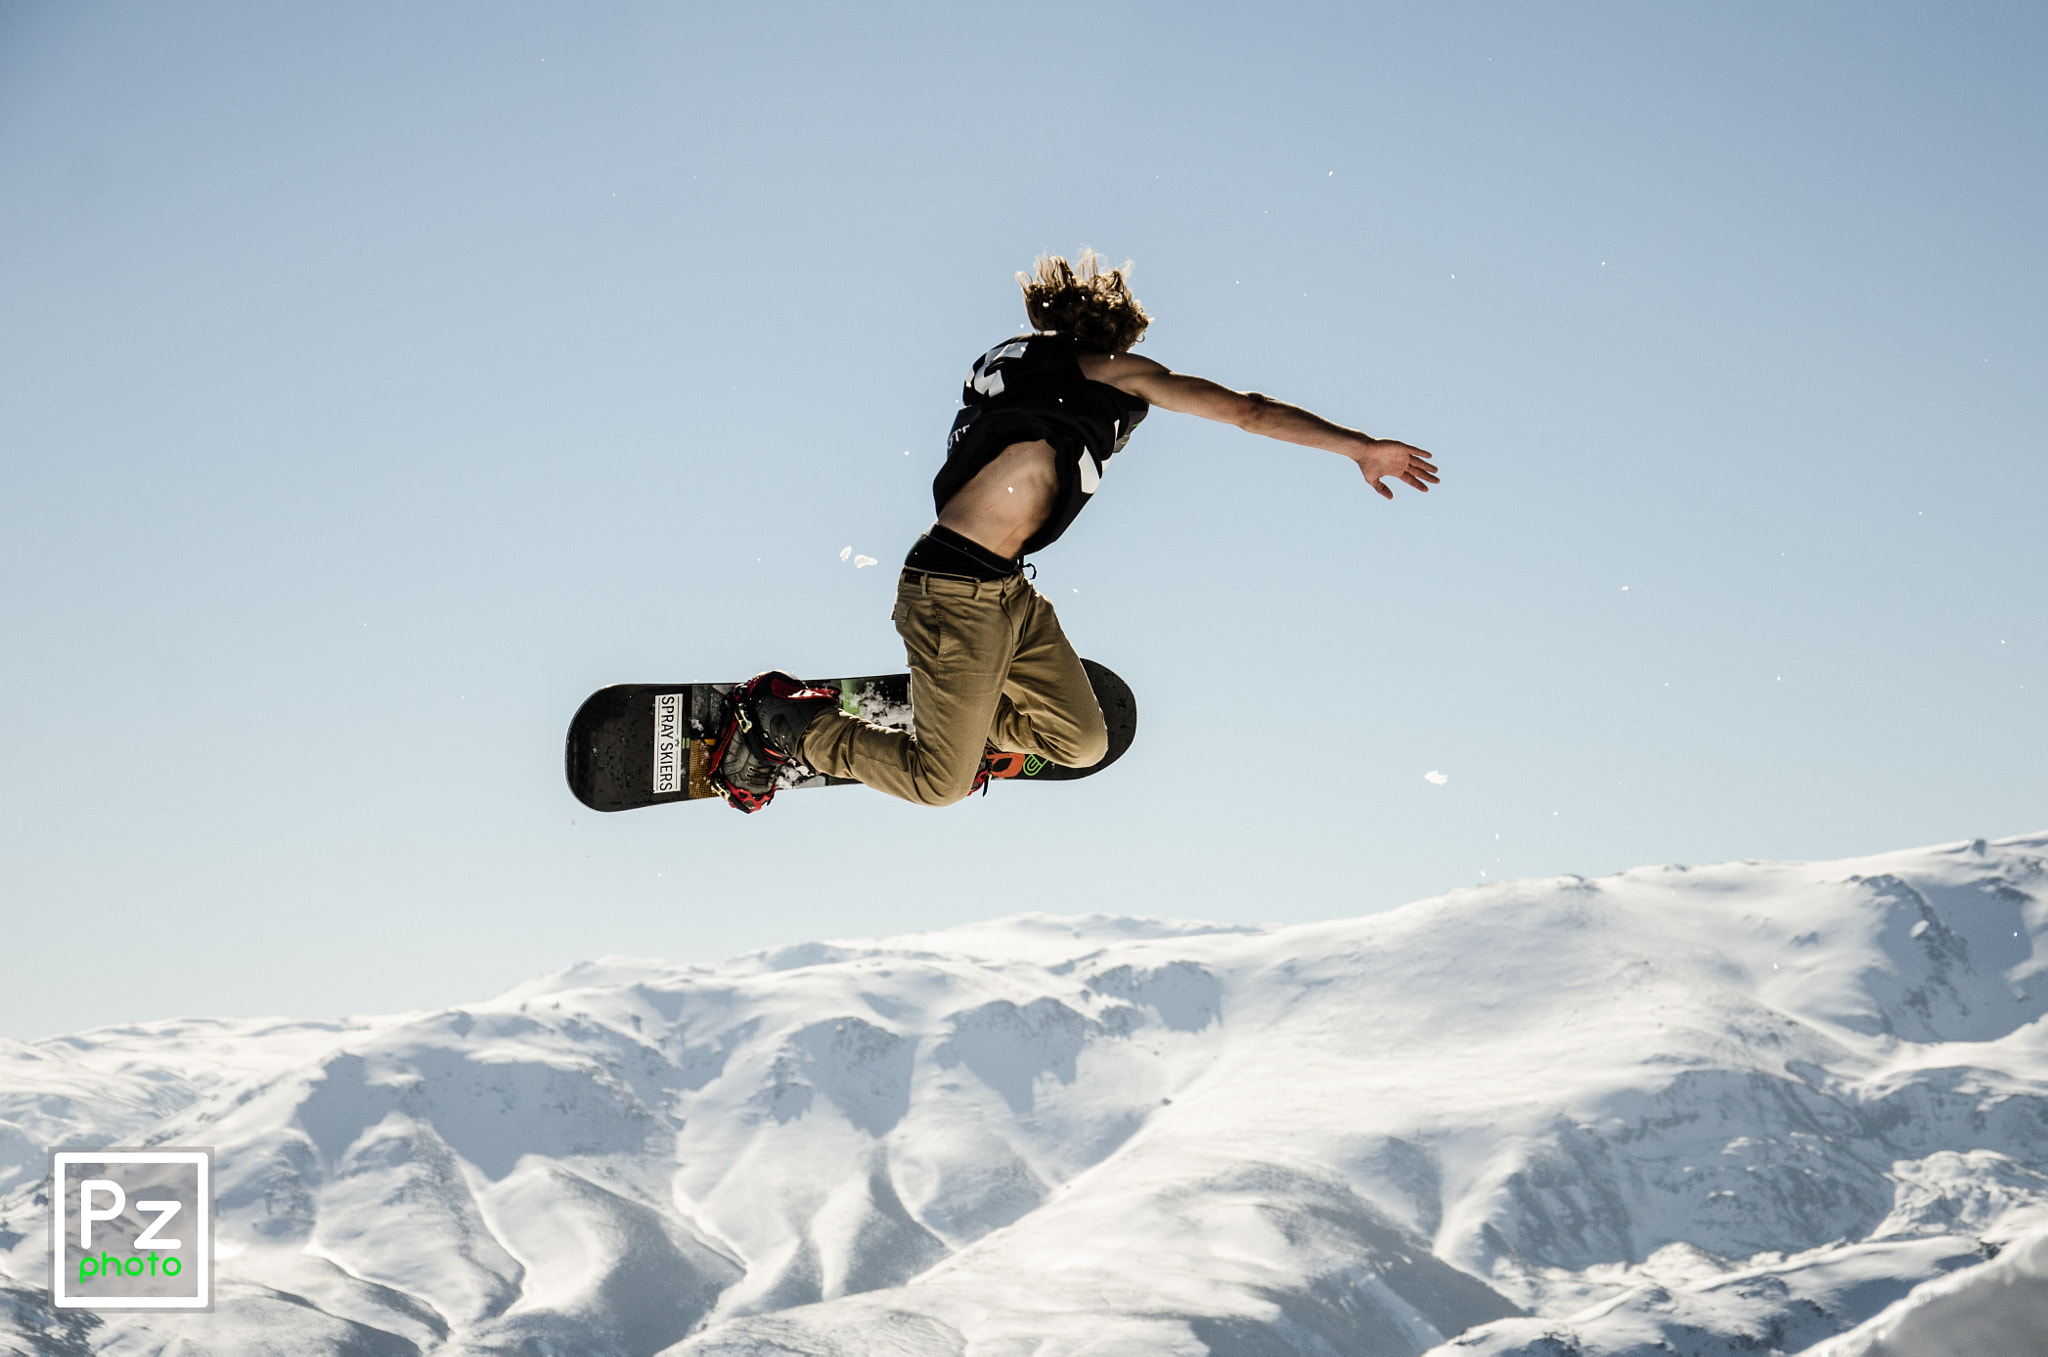 Photograph Snowboard by Francisco  Pérez Phillips on 500px